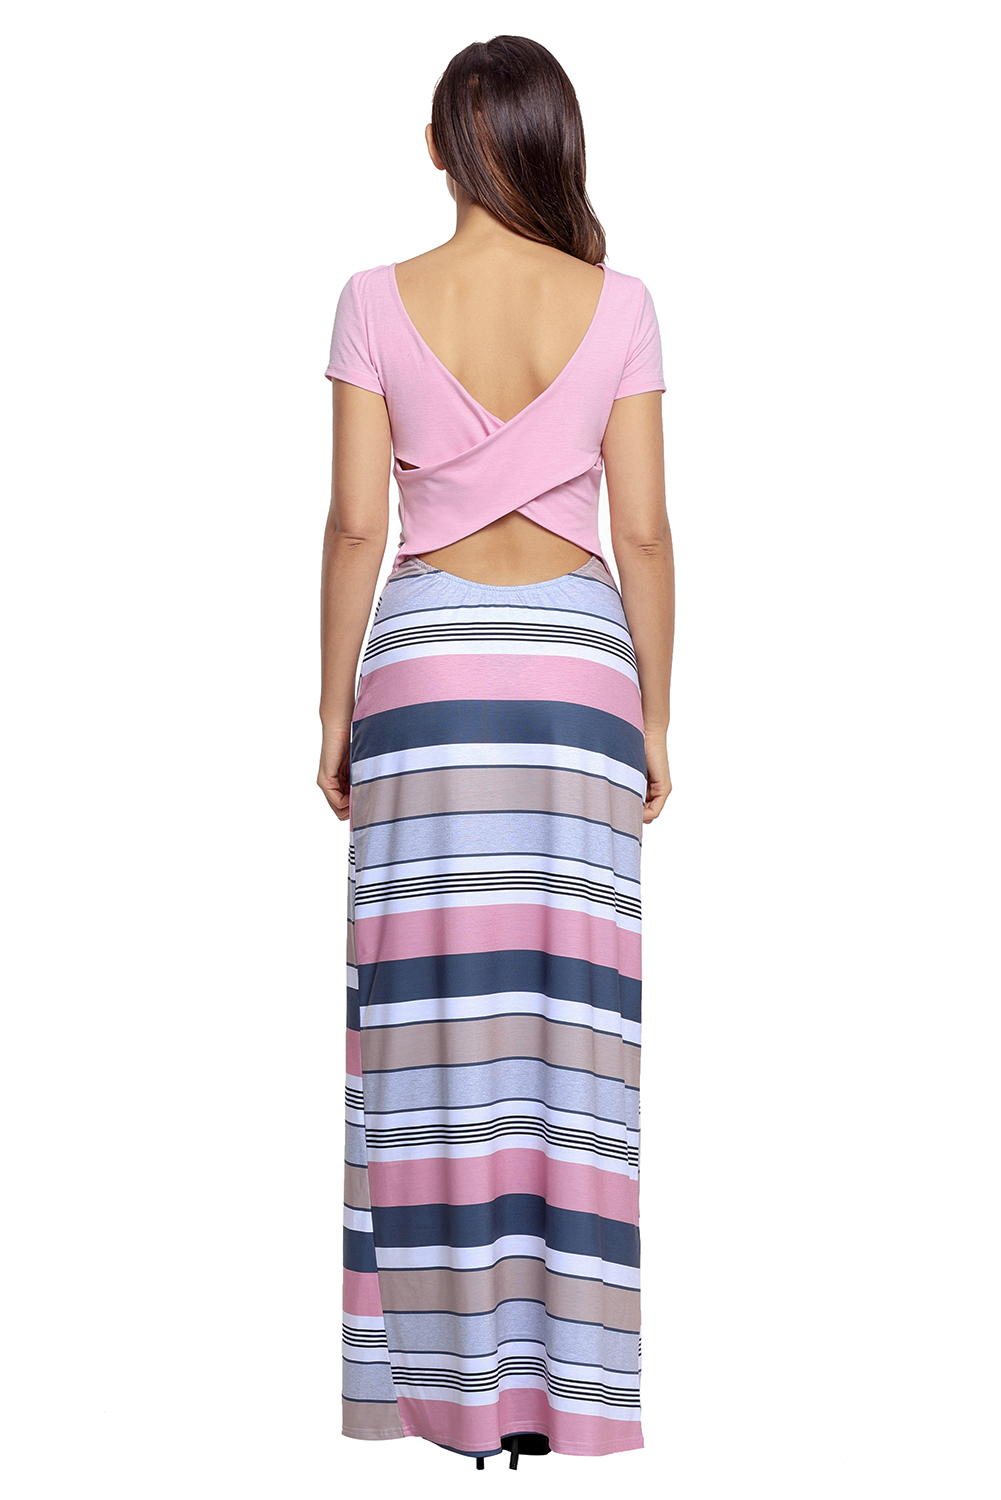 BY61482-10 Pink Crisscross Back Muliticolor Maxi Dress